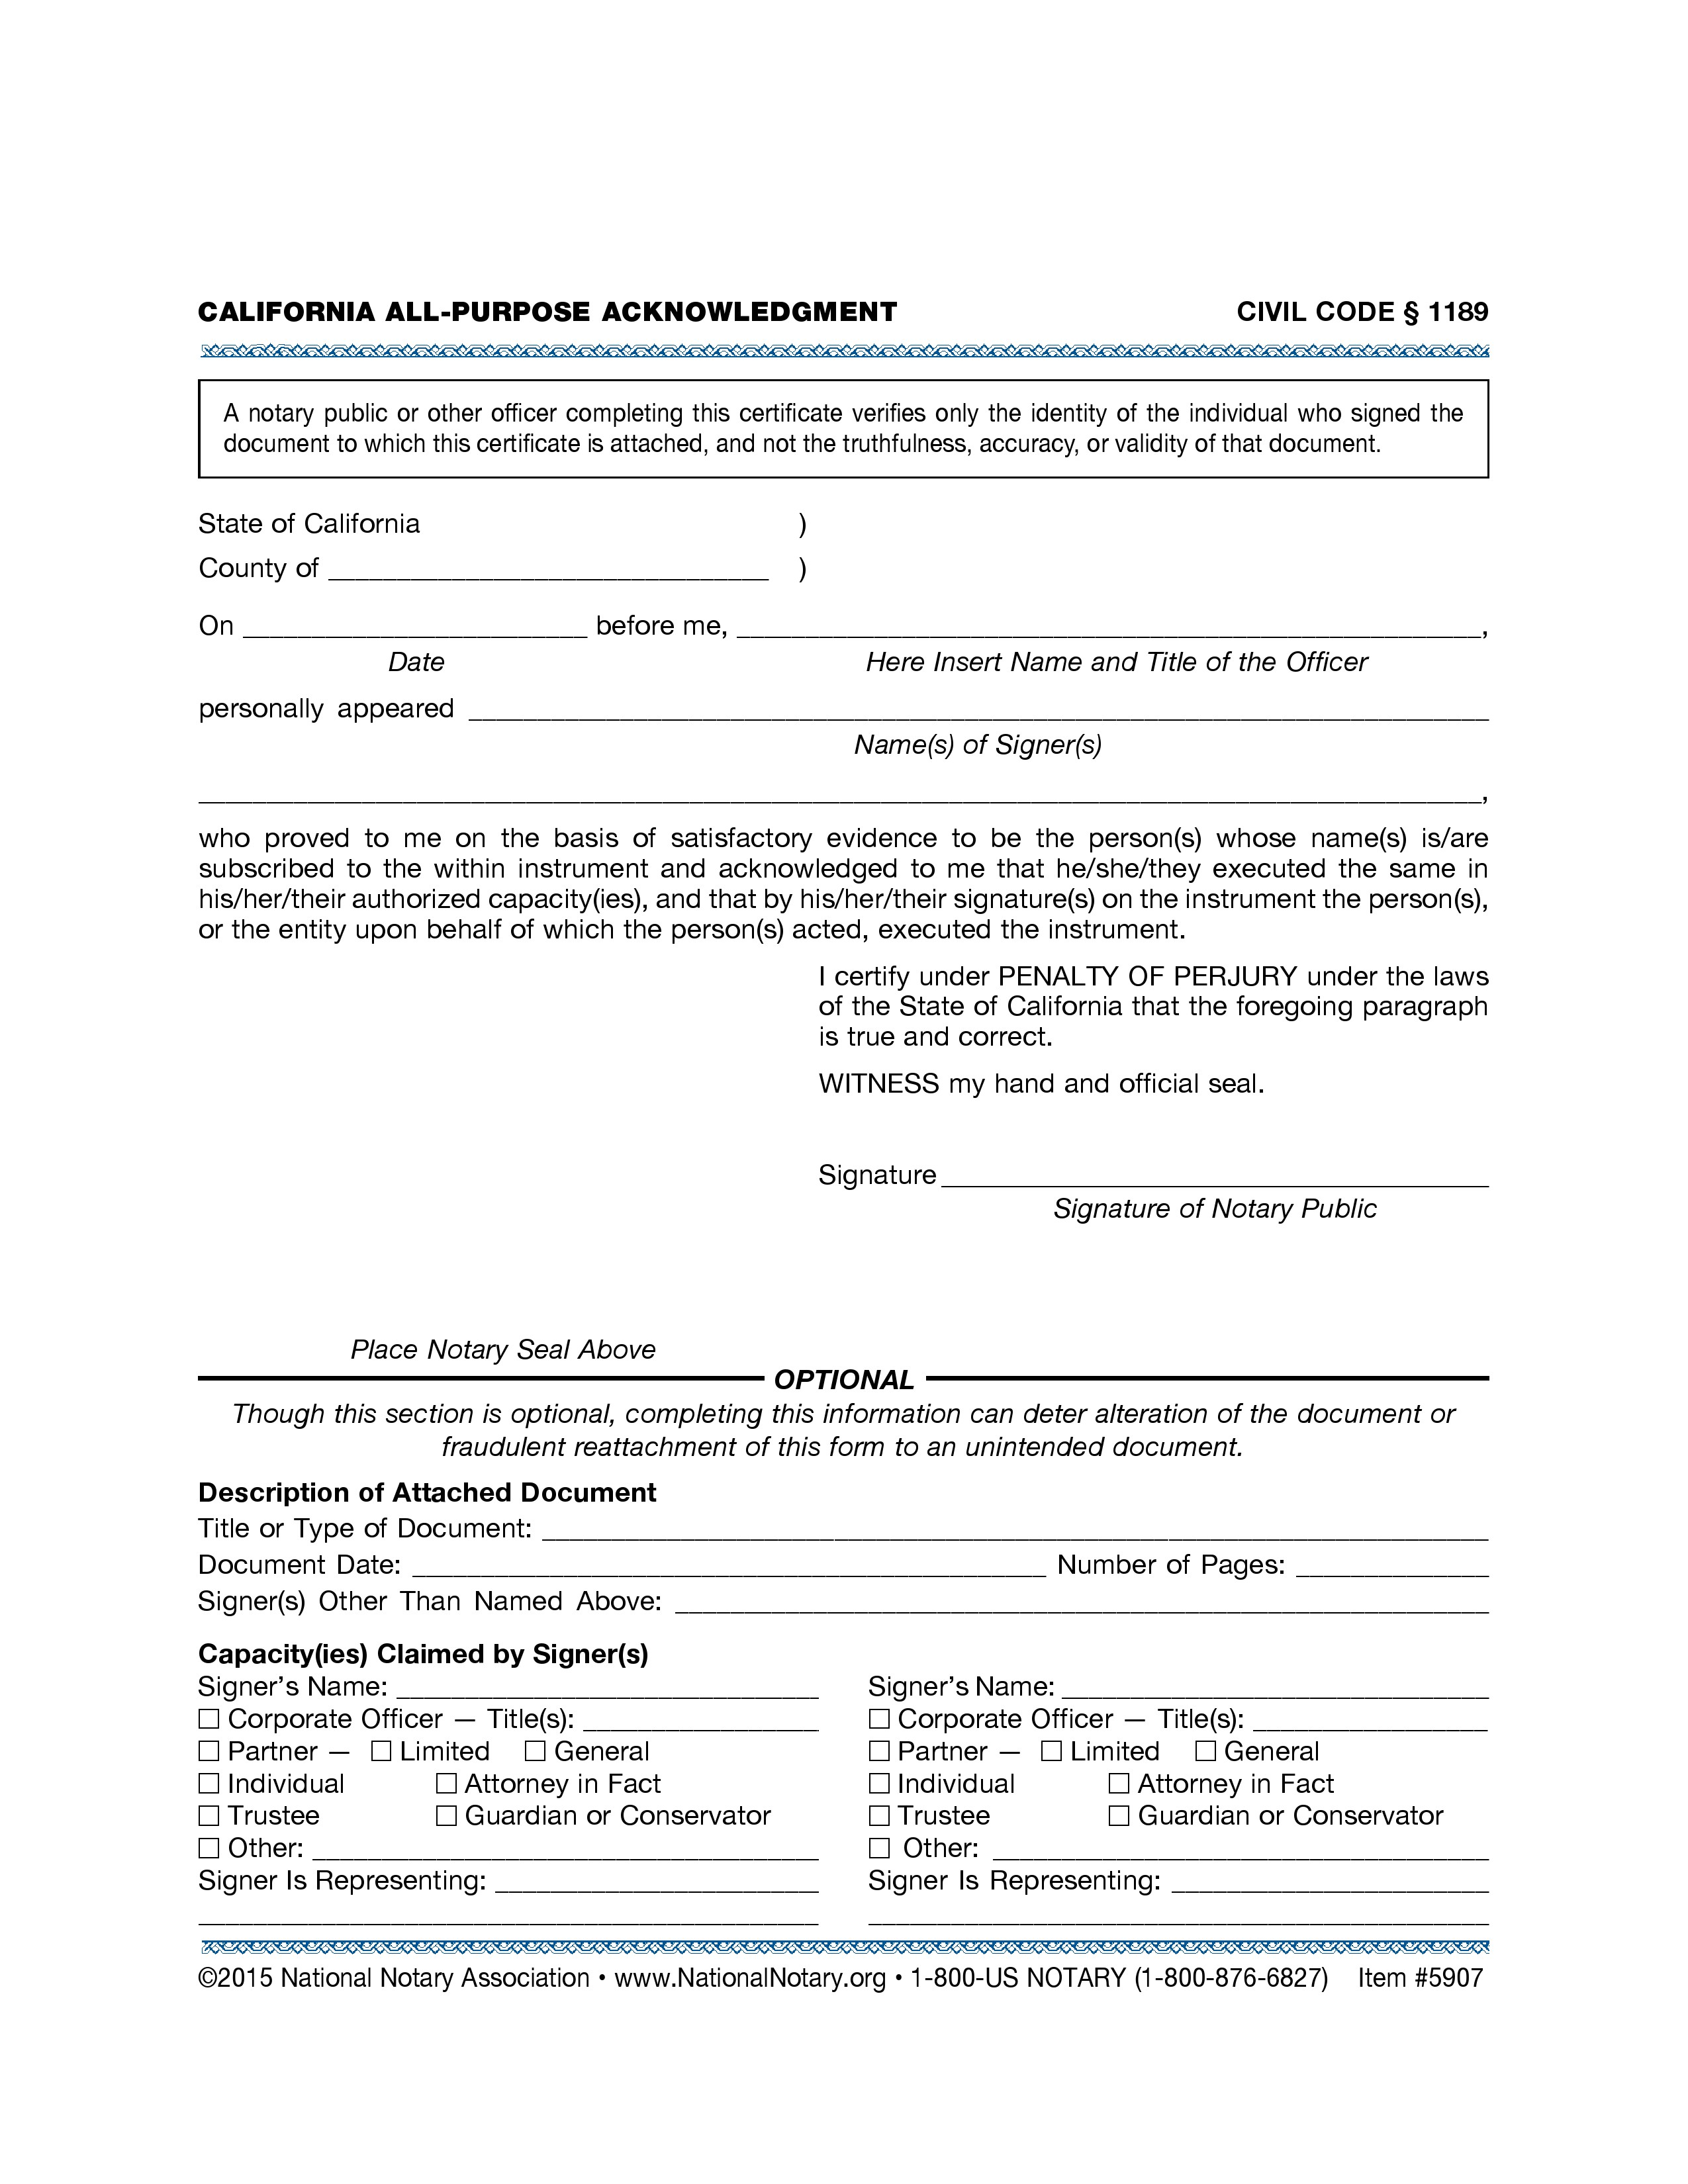 California All Purpose Acknowledgement Form – Notary Public Near Me